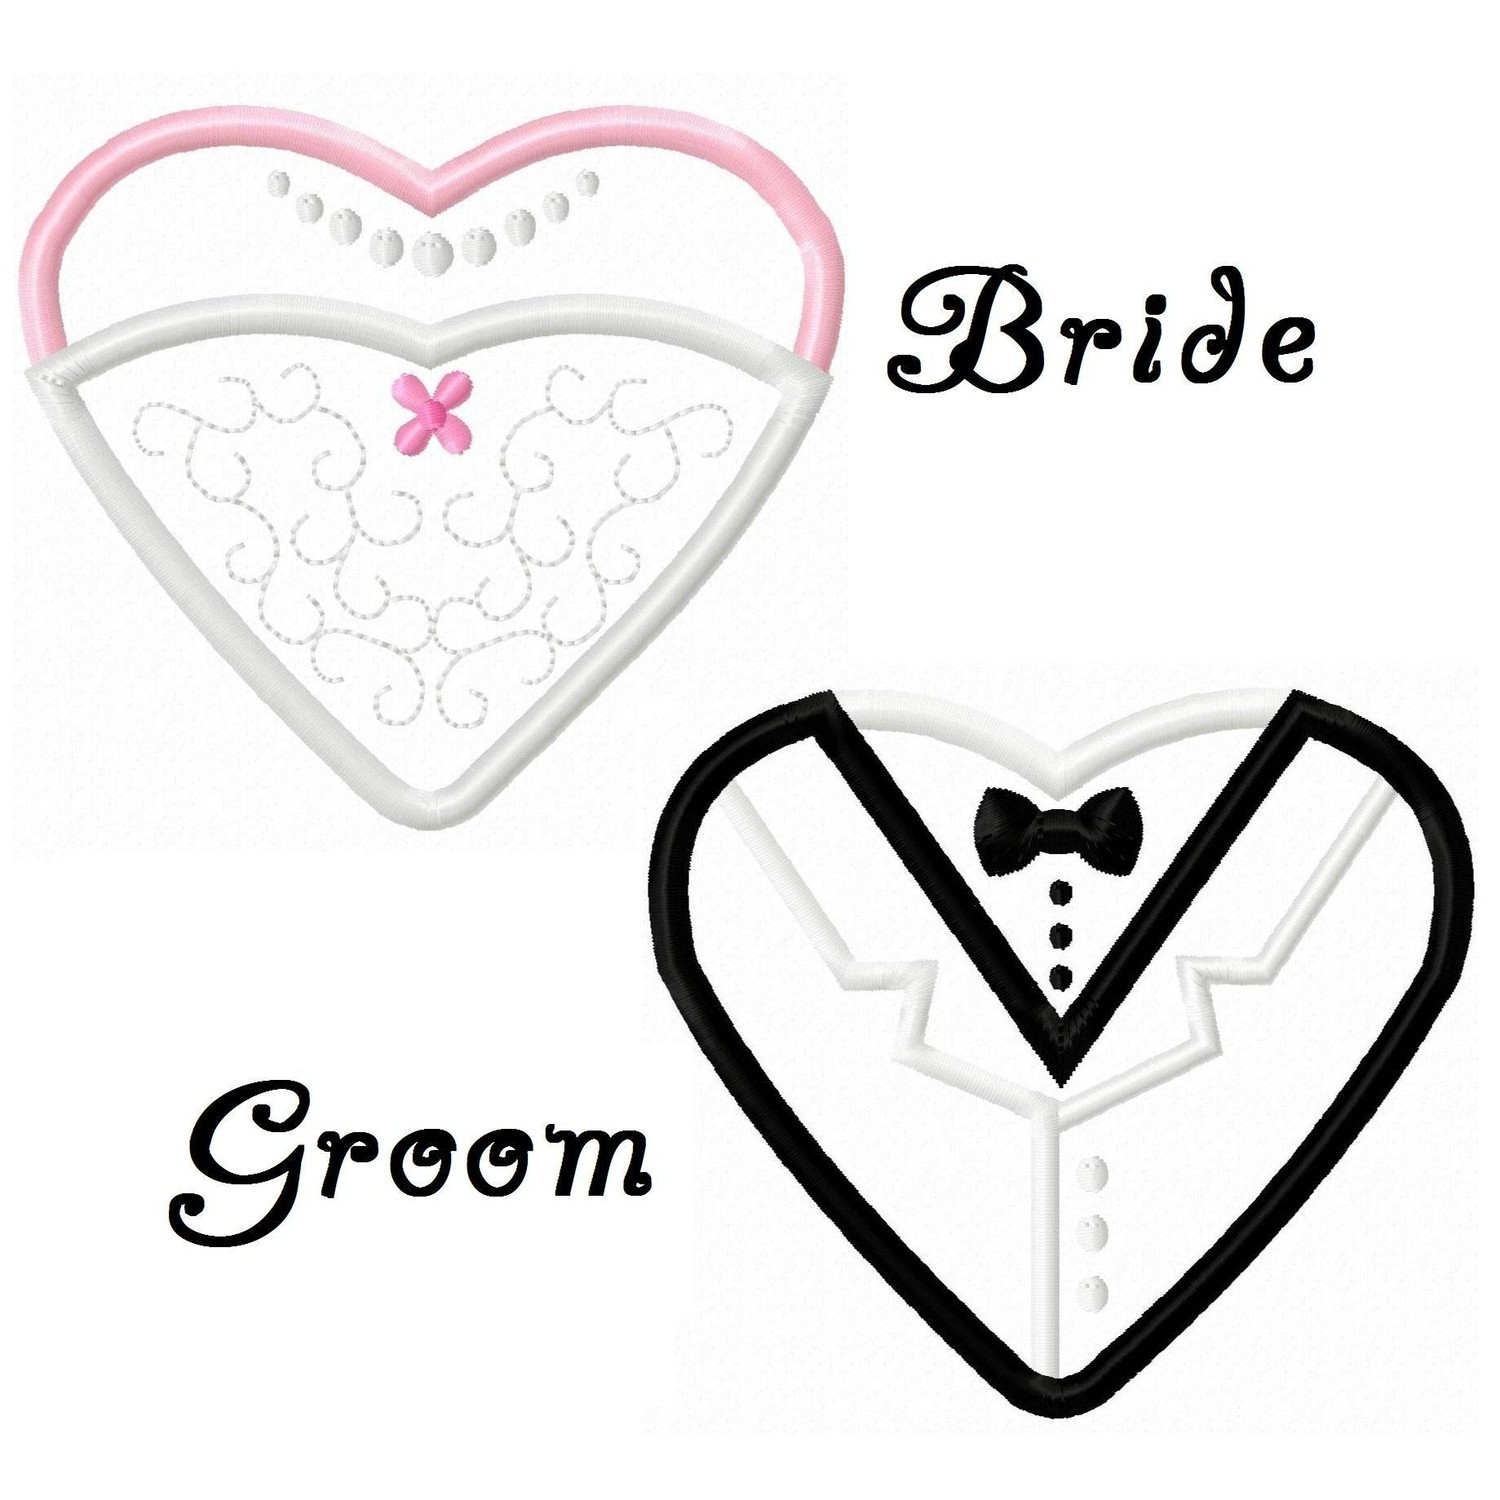 hight resolution of wedding dress and tuxedo clipart